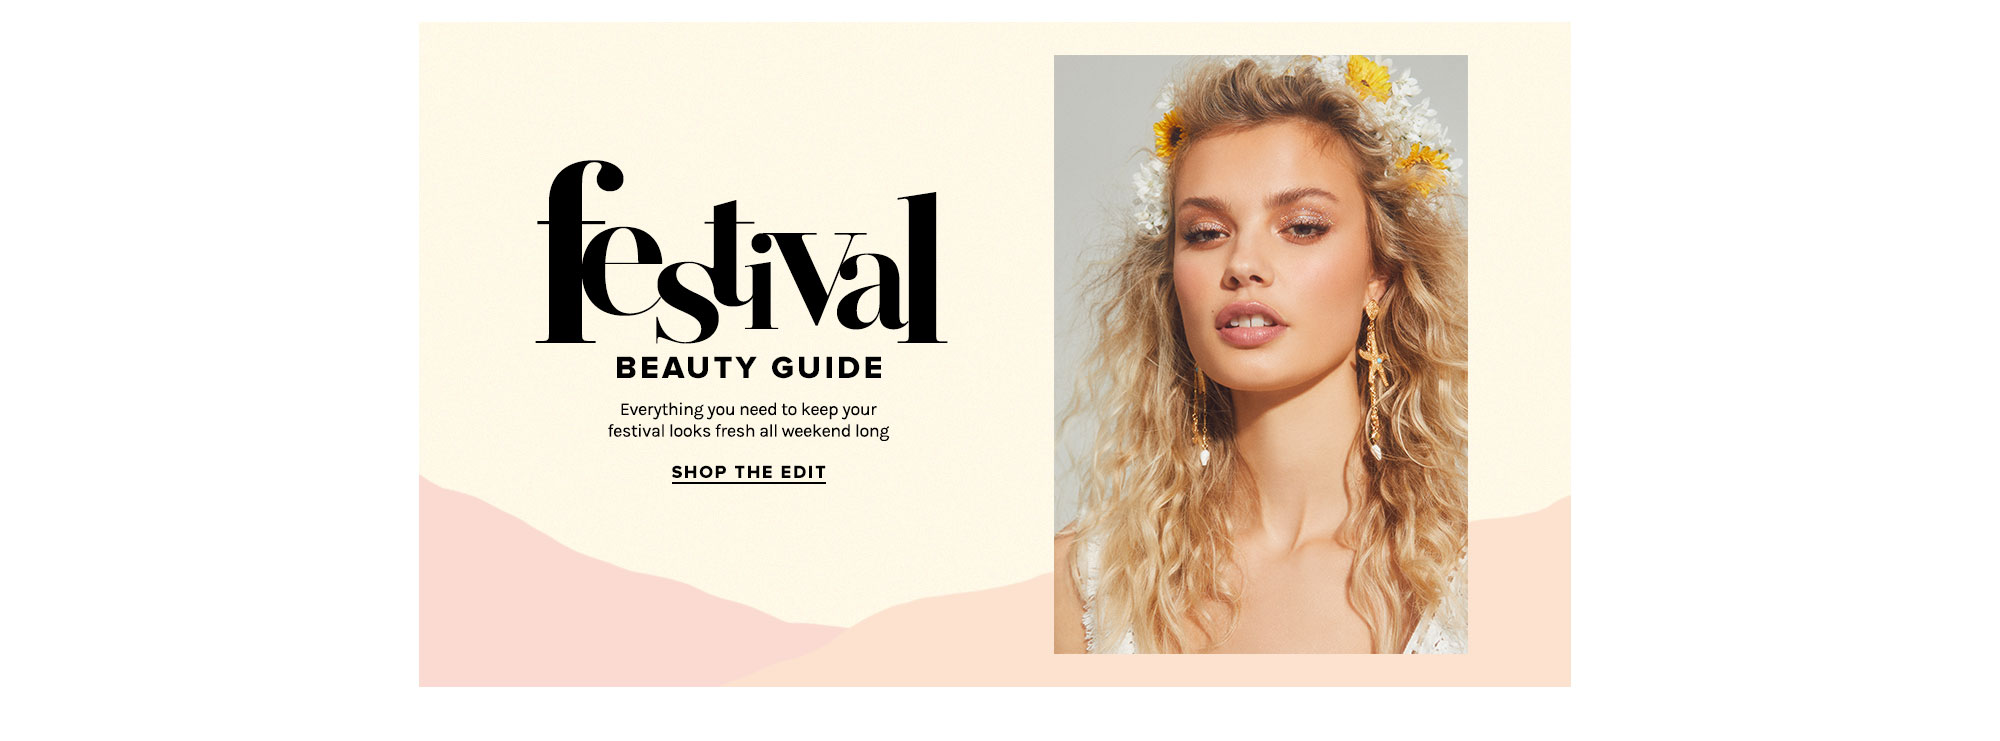 Festival Beauty Guide